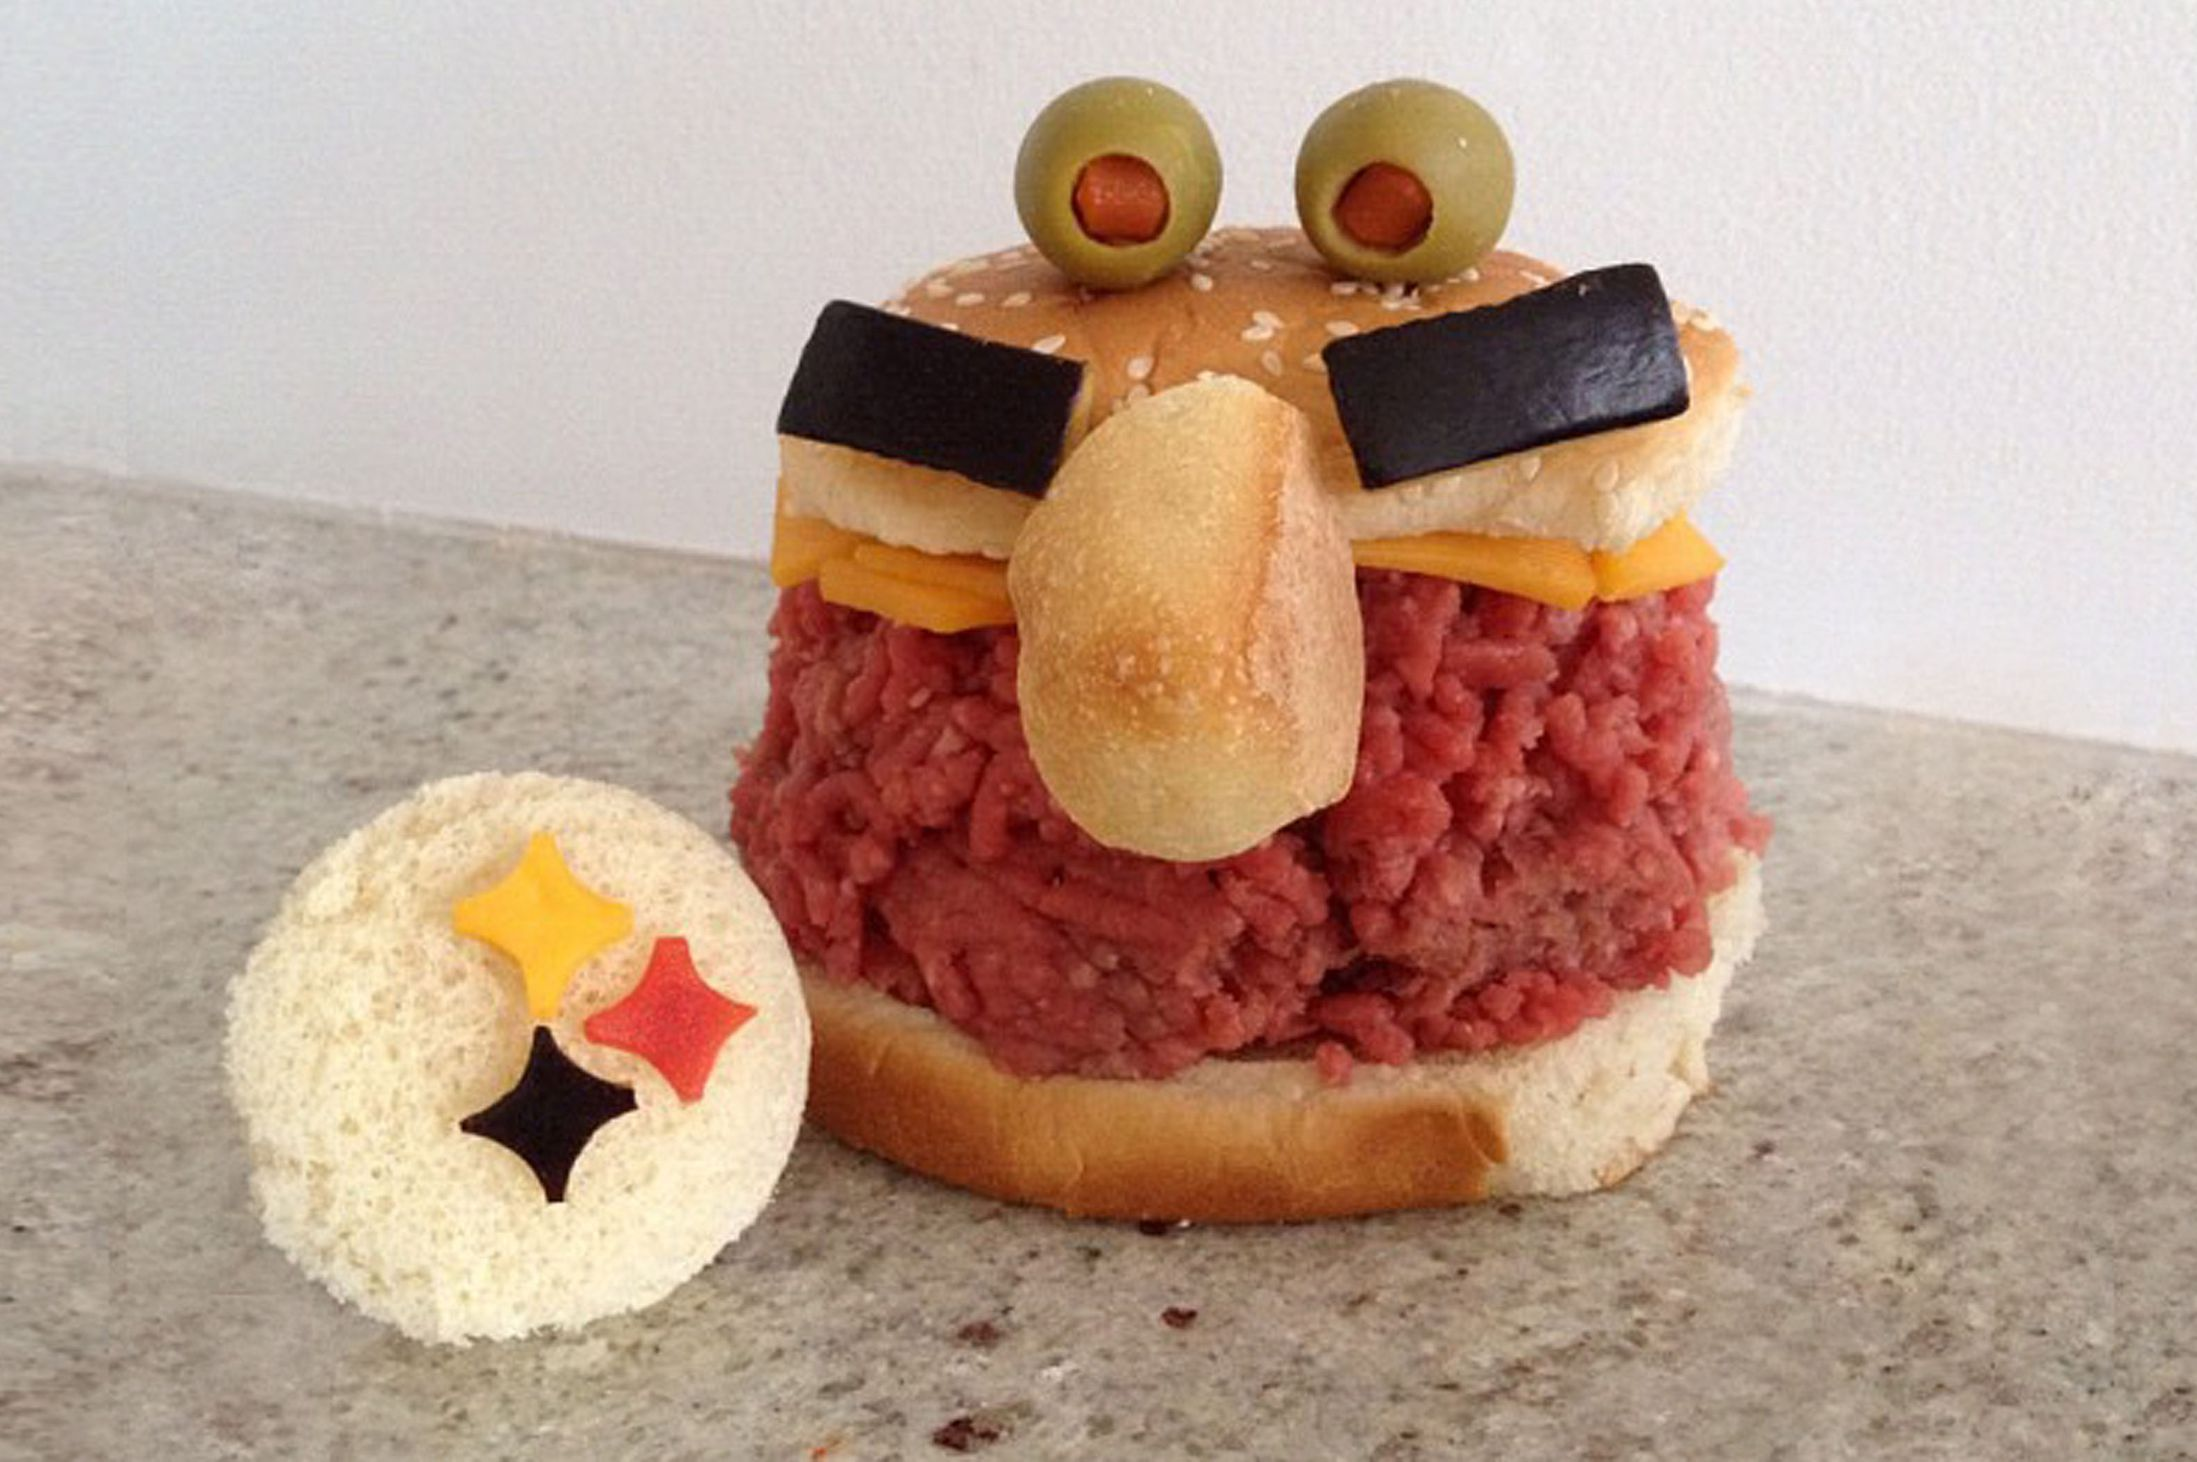 Kasia Haupt - Sanwich Art Sculpture - Alien Minced Beef